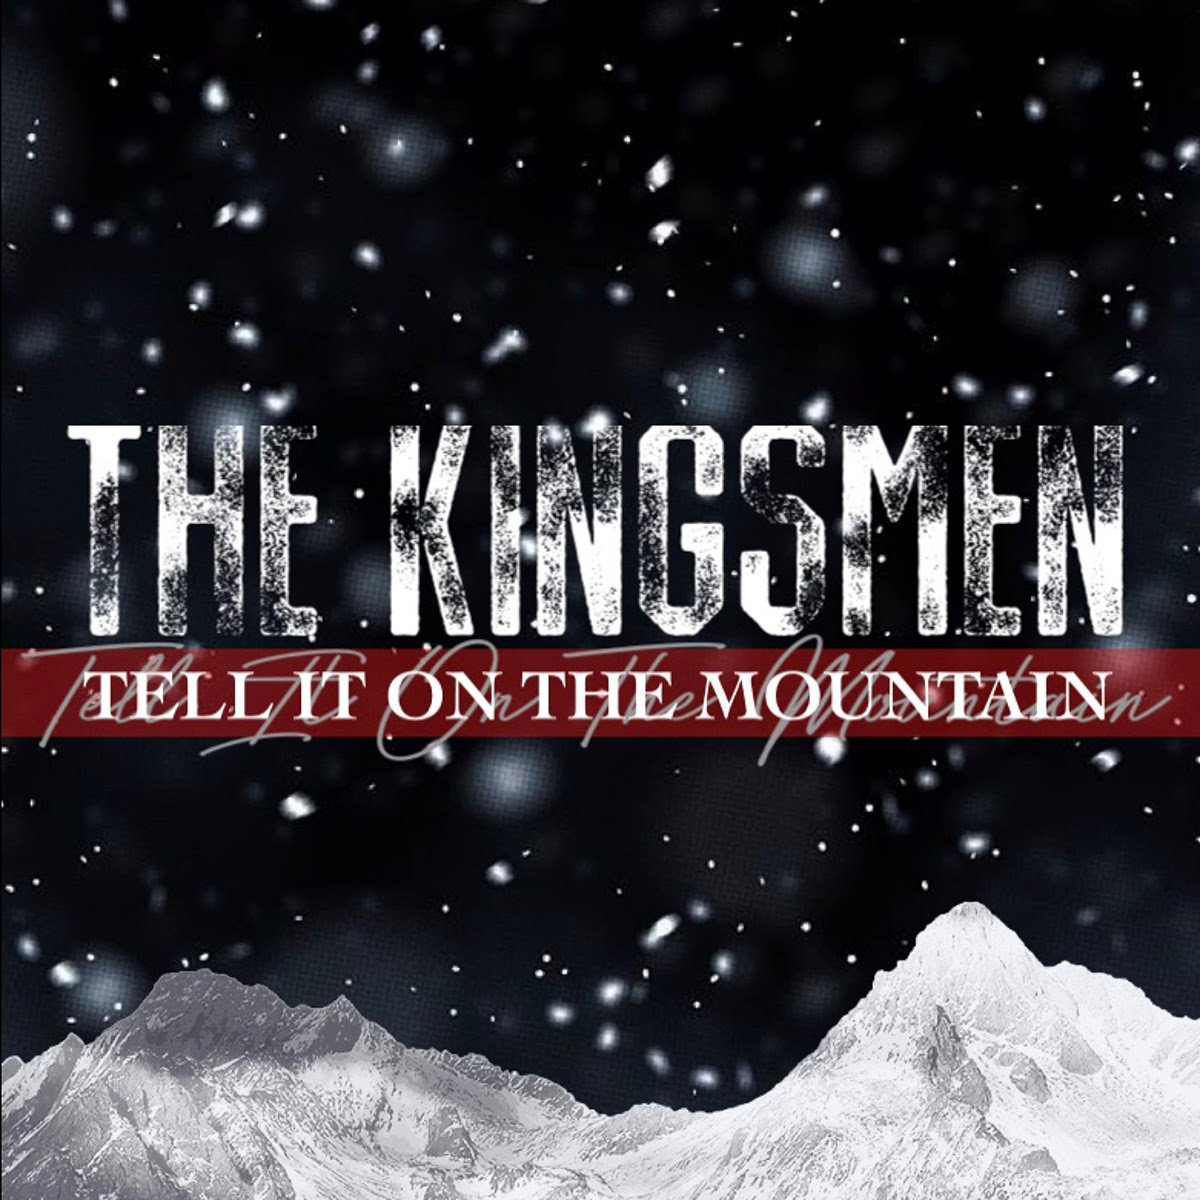 The Kingsmen album cover